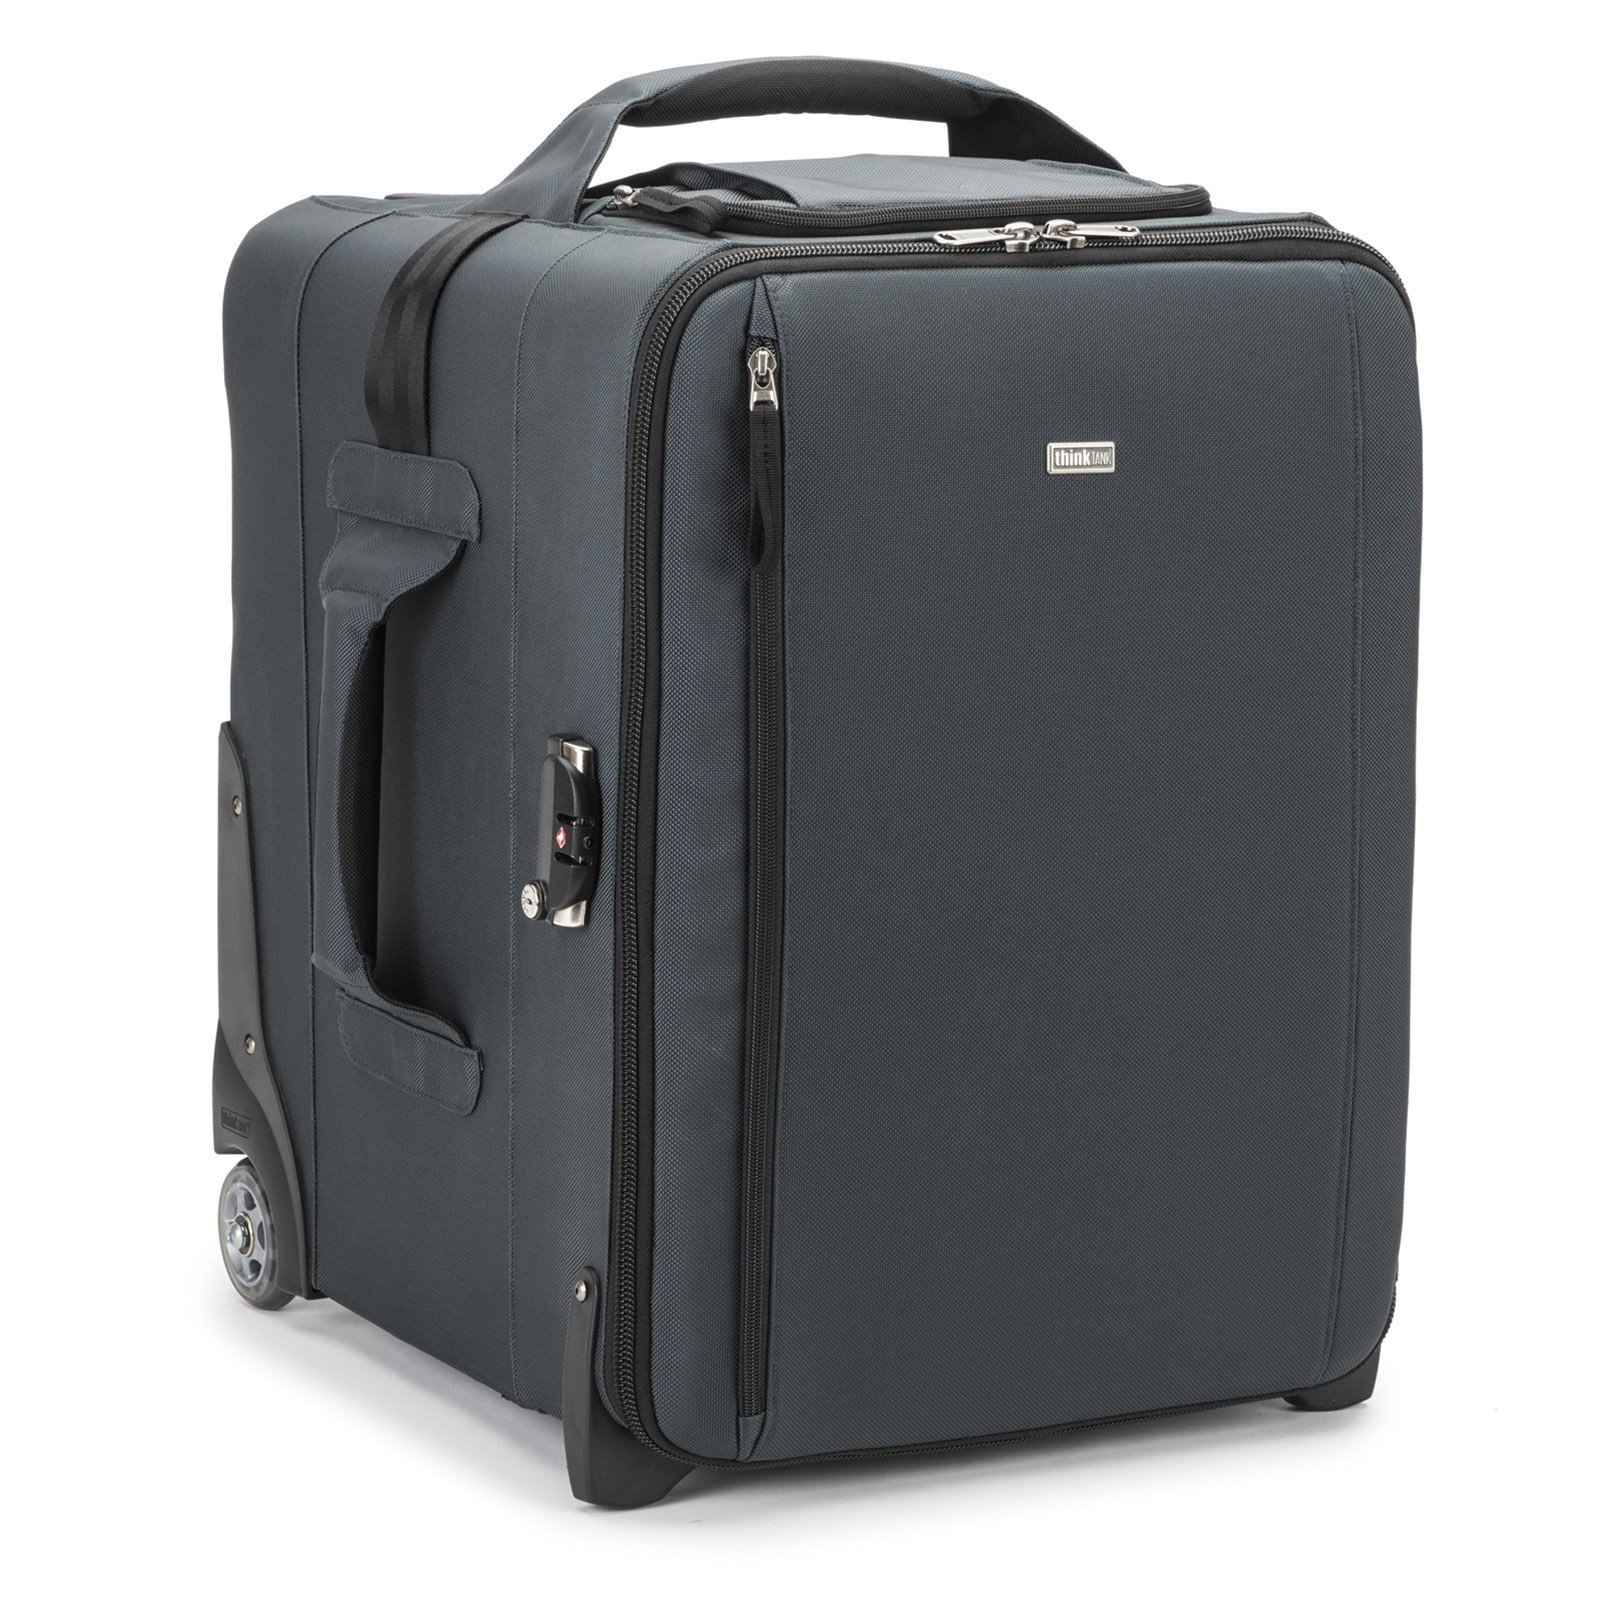 Think Tank Photo Video Rig 18 Rolling Cinema Case (Pacific Slate)